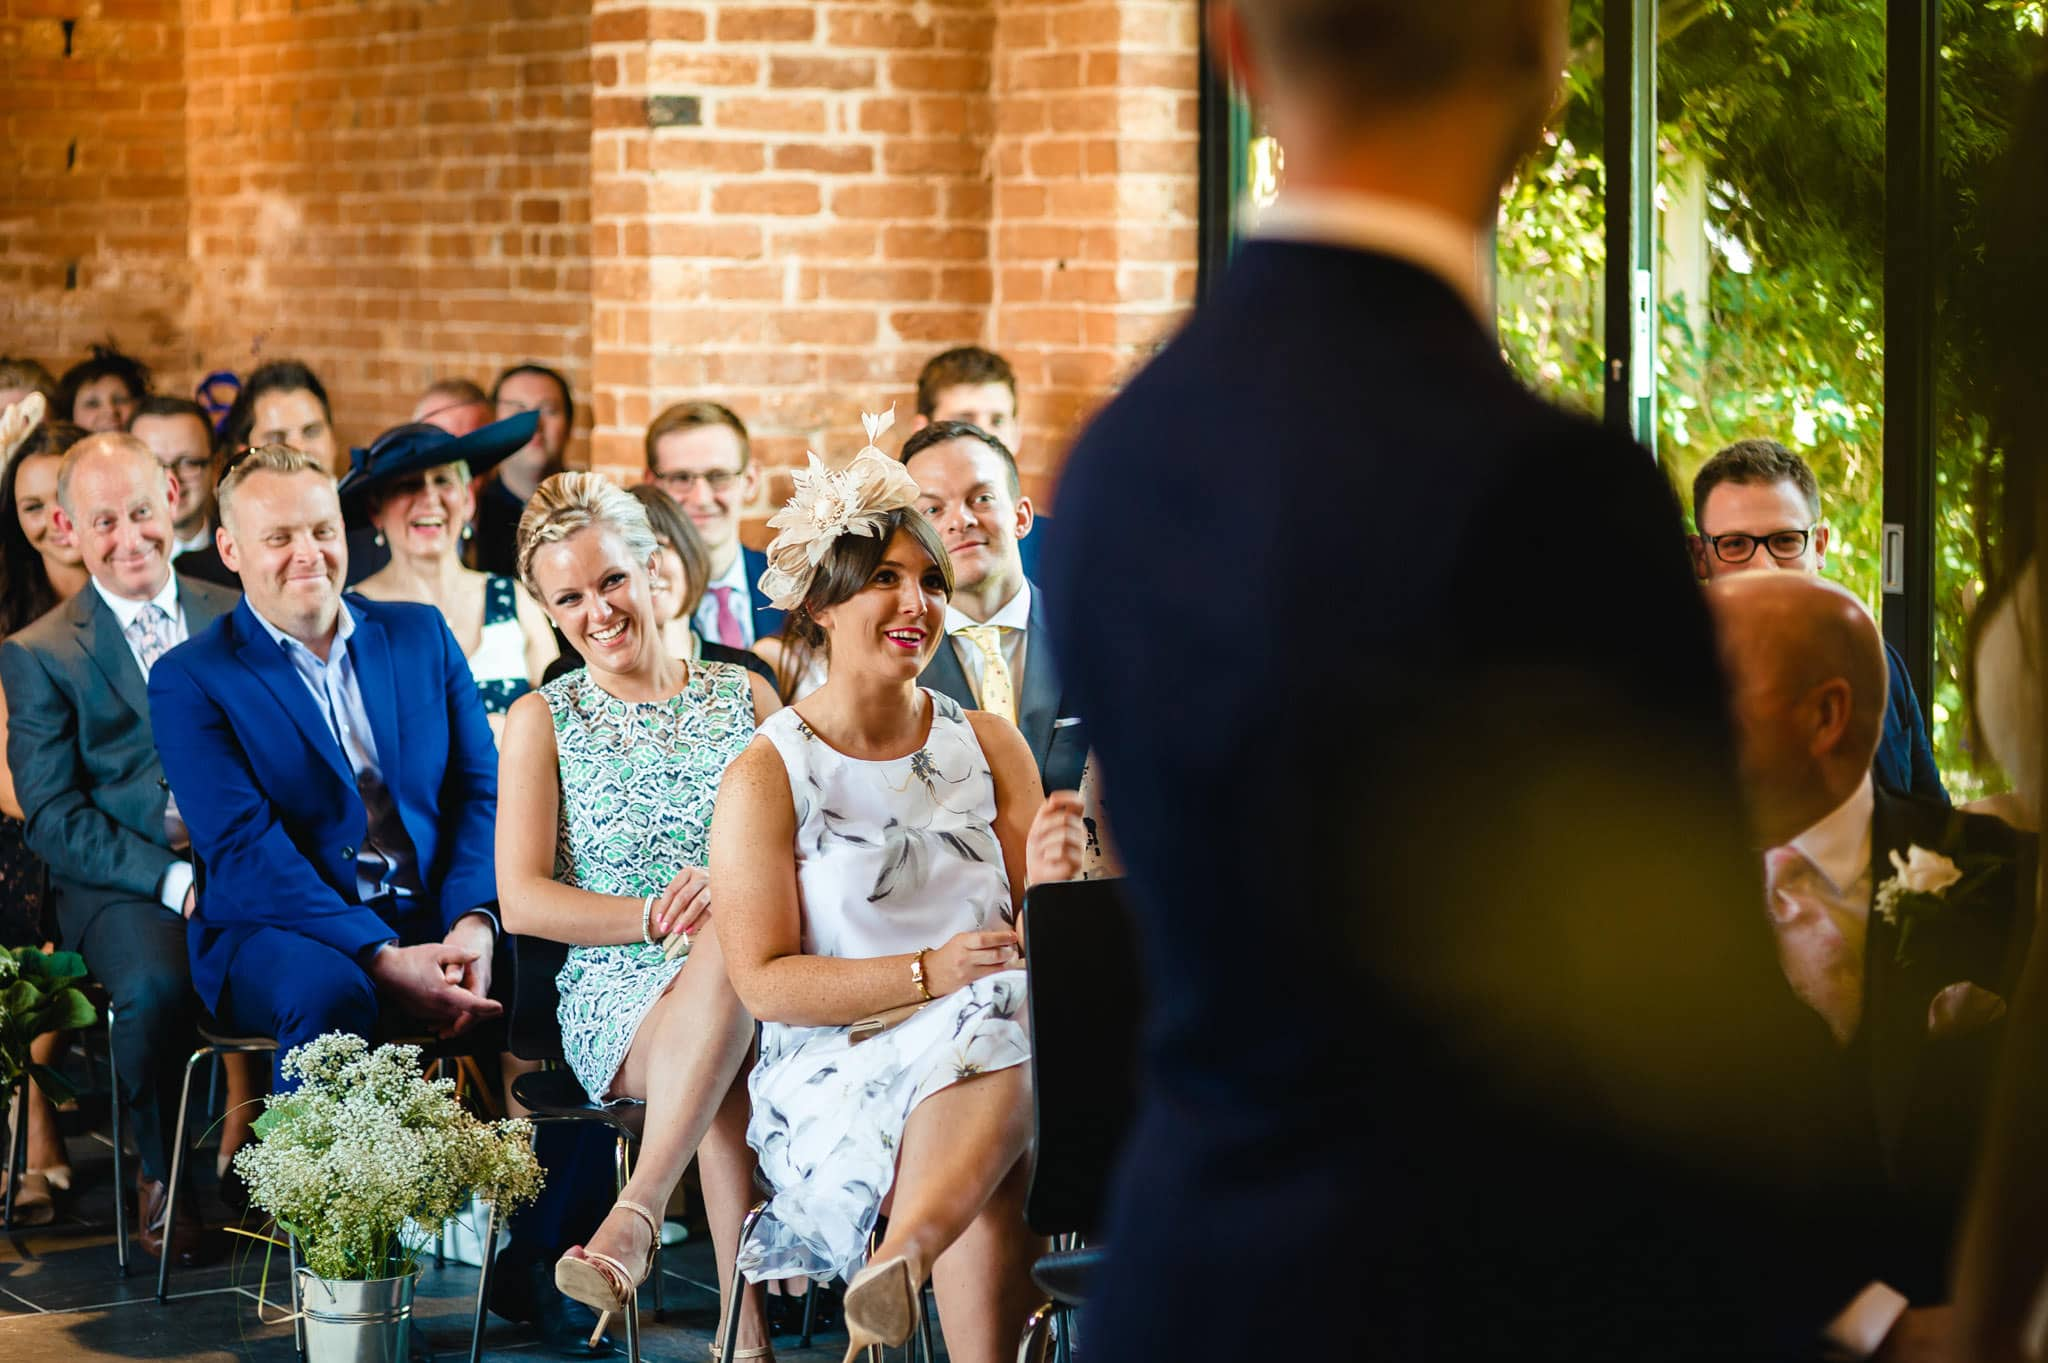 Wedding at Redhouse Barn in Stoke Prior, Worcestershire 62